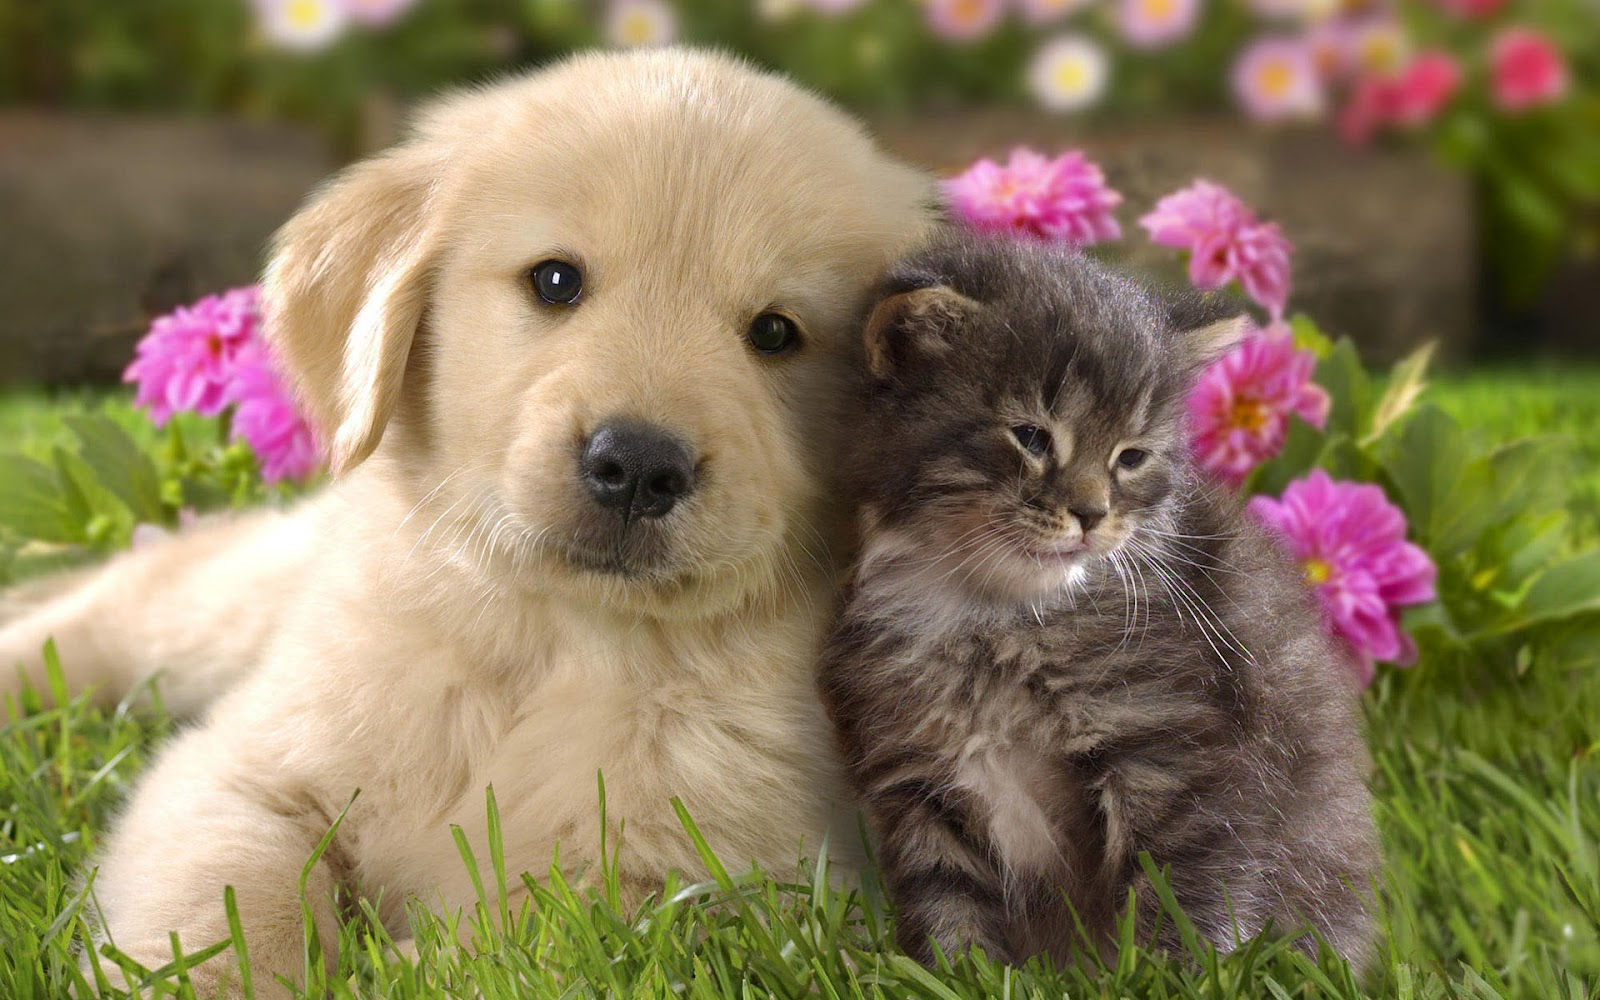 Cats And Dogs Wallpapers 1600x1000 pixel Animal HD Wallpaper 35053 1600x1000